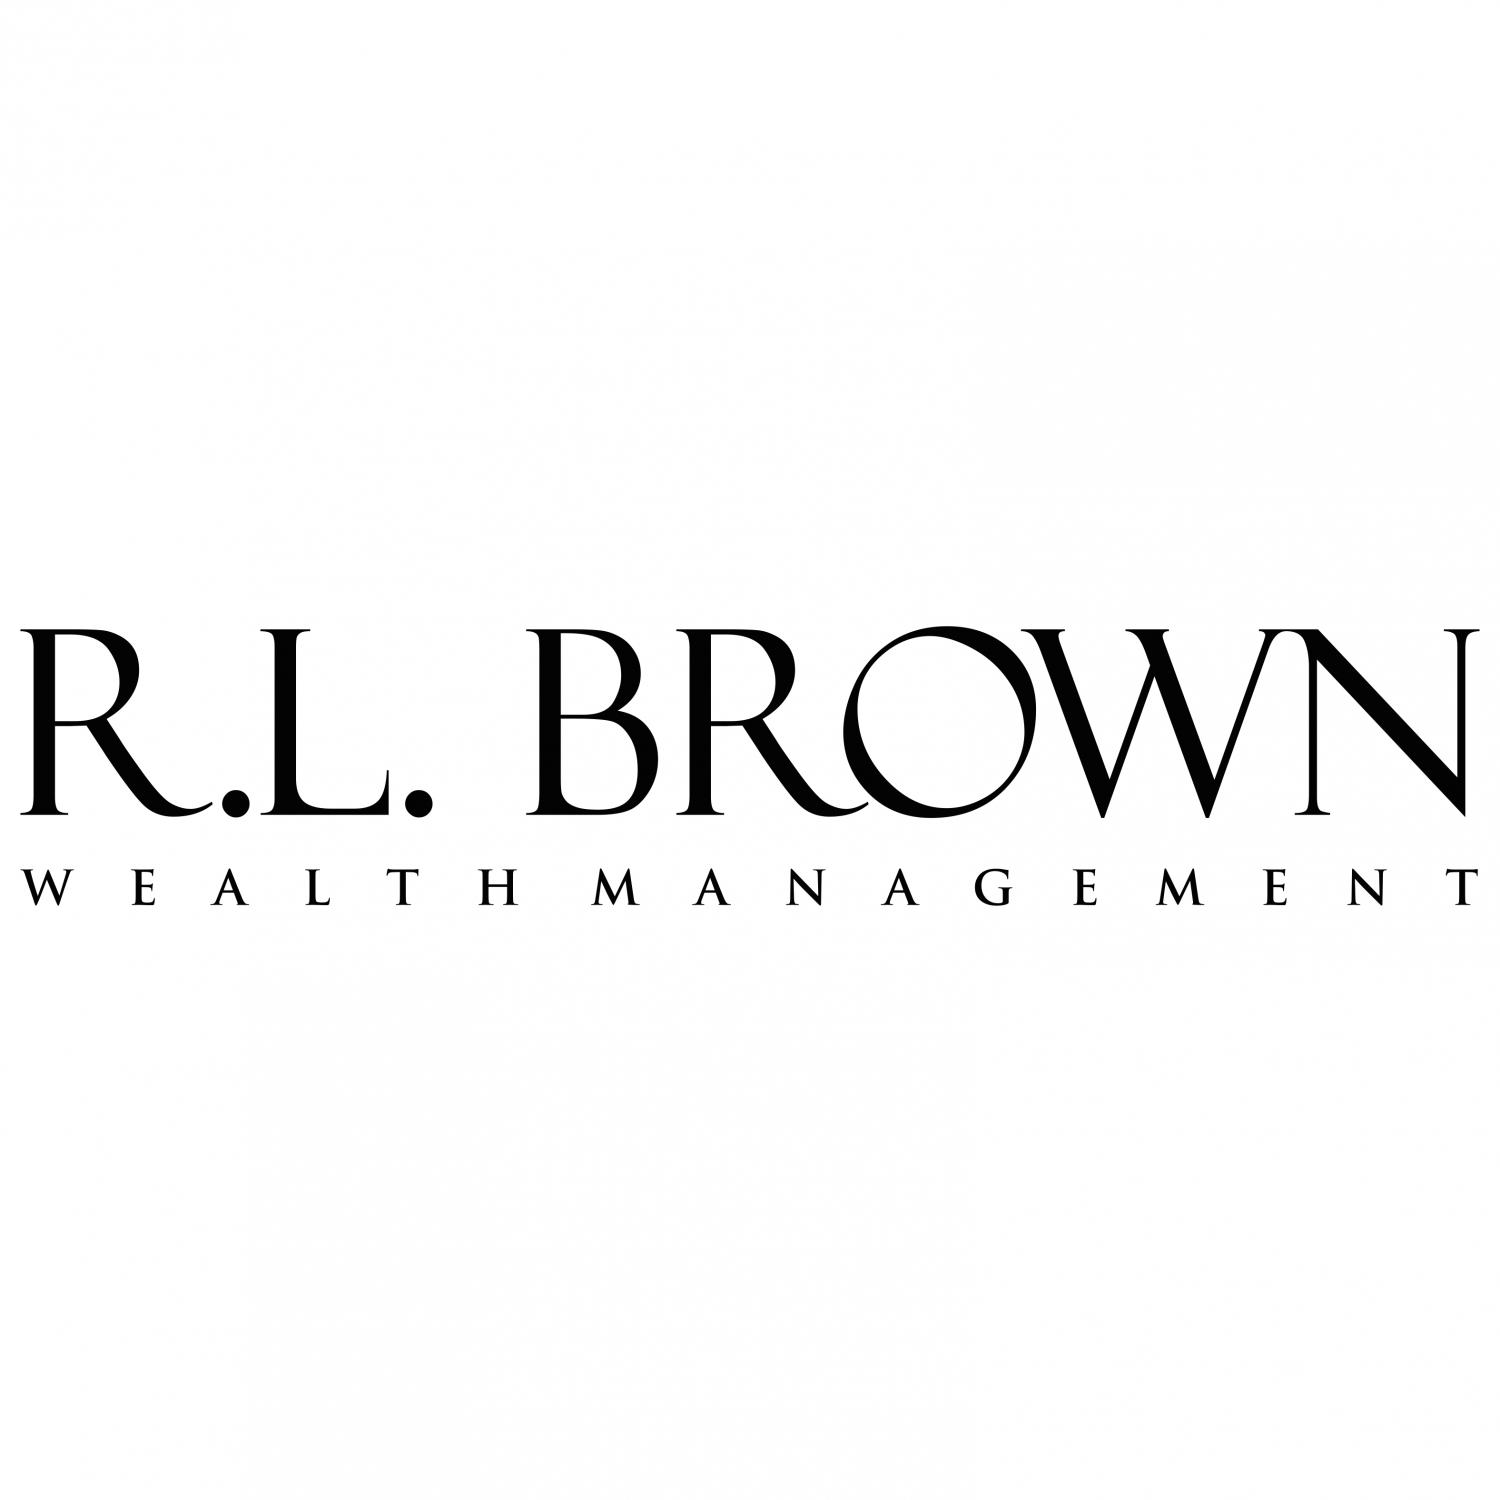 R.L. Brown Wealth Management